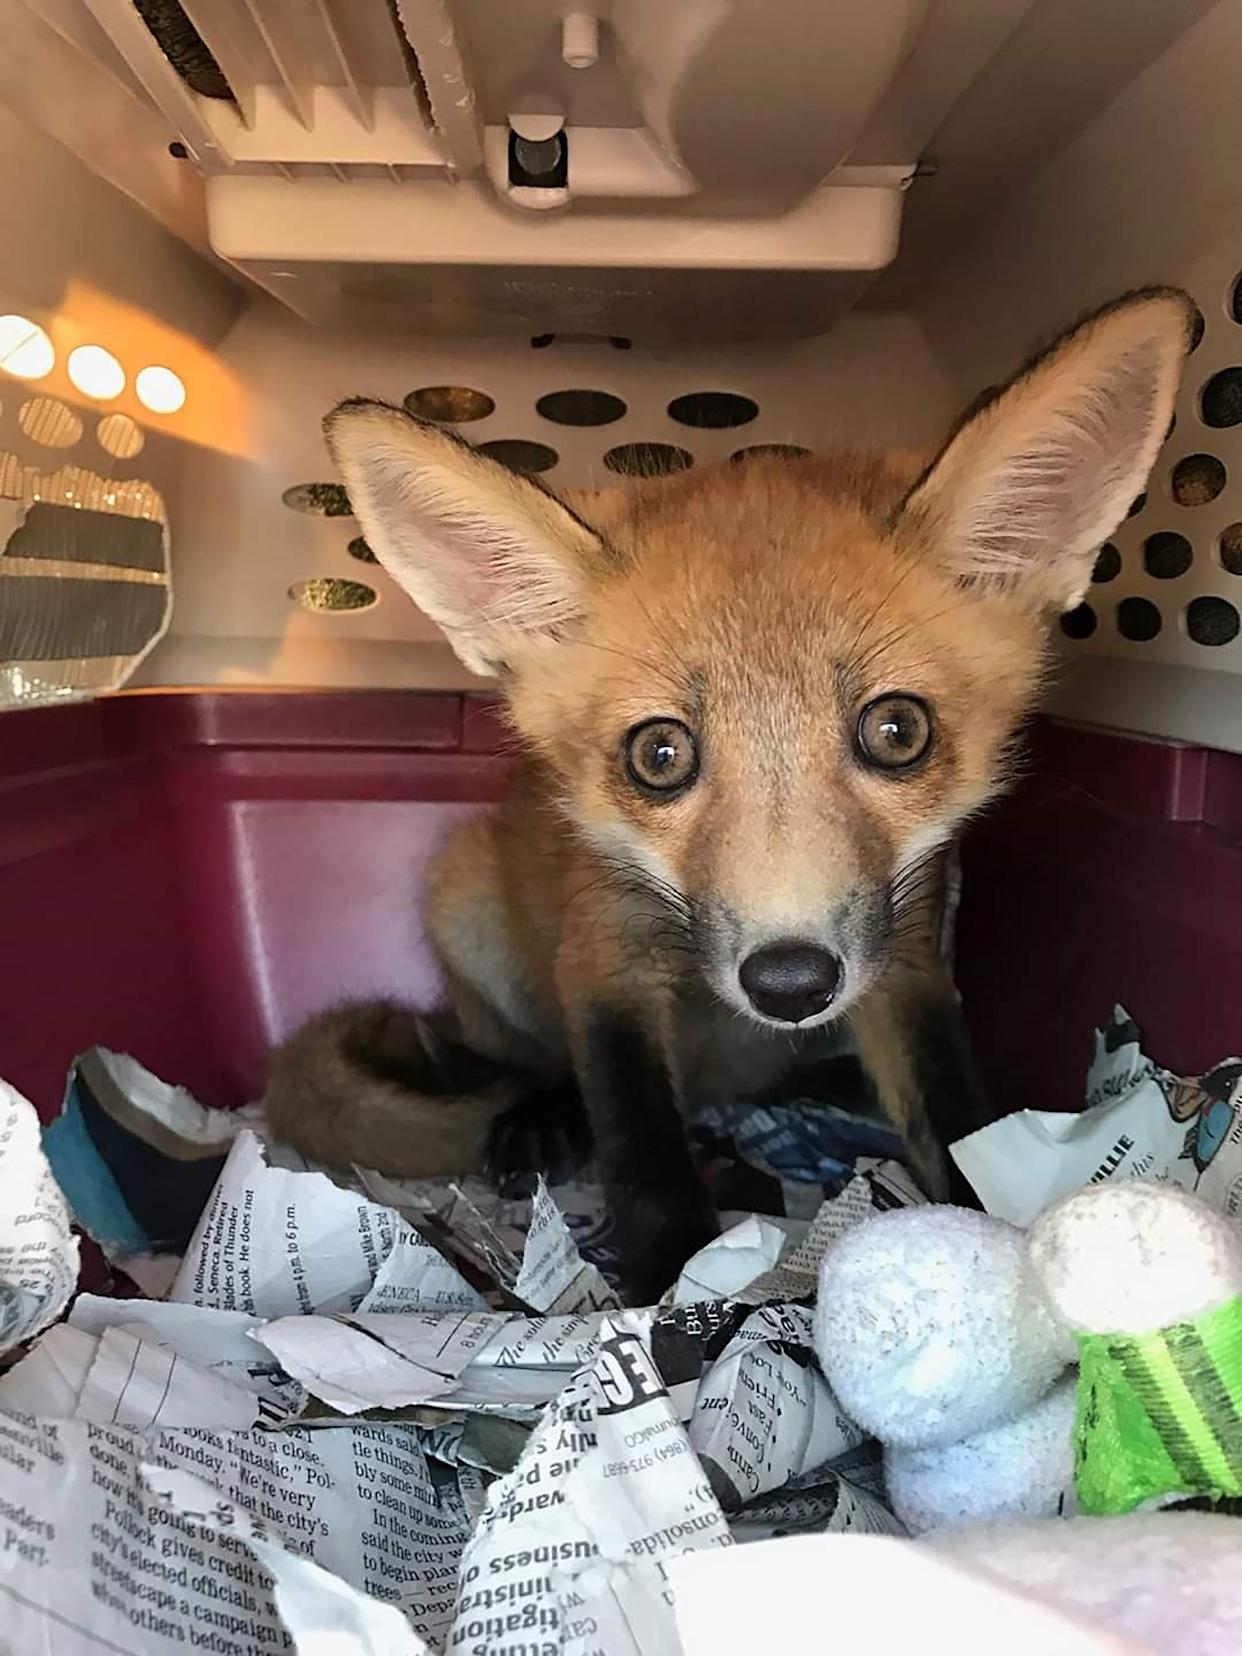 An injured fox that was rescued in 2017. (via Wildlife Resources and Education Network via The New York Times)